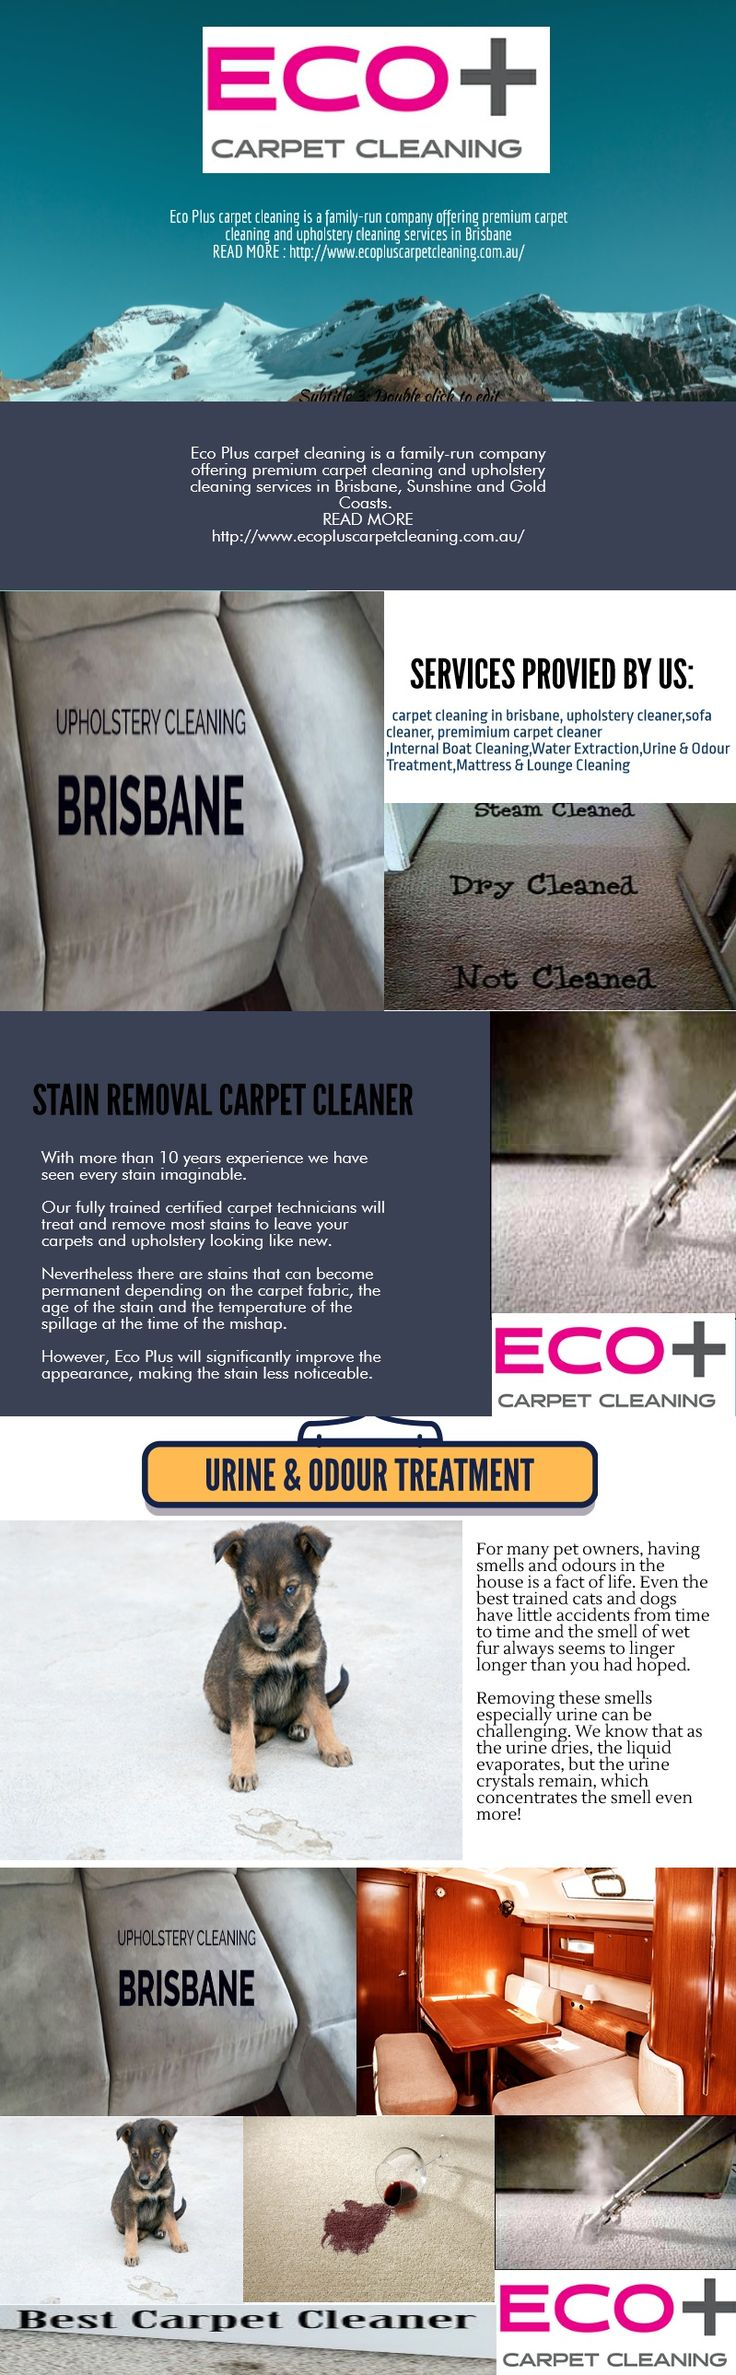 eco plus carpet cleaning is a familyrun company offering premium carpet cleaning and upholstery